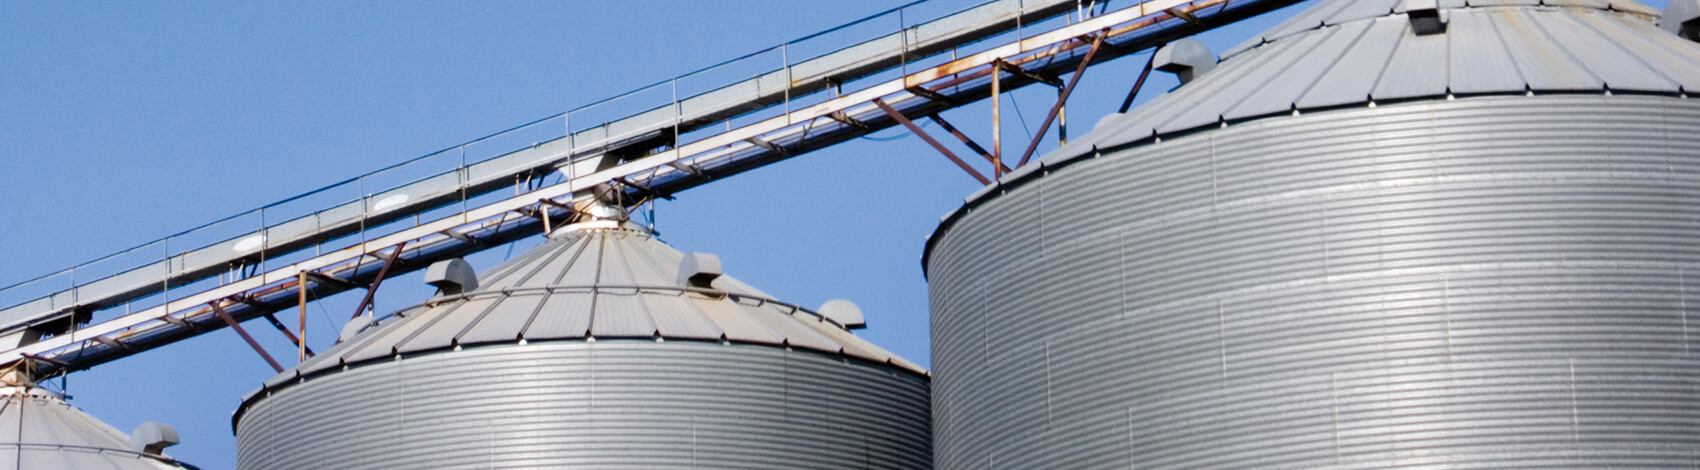 Agricultural silos painted with Jetcoat fibered aluminum roof coating